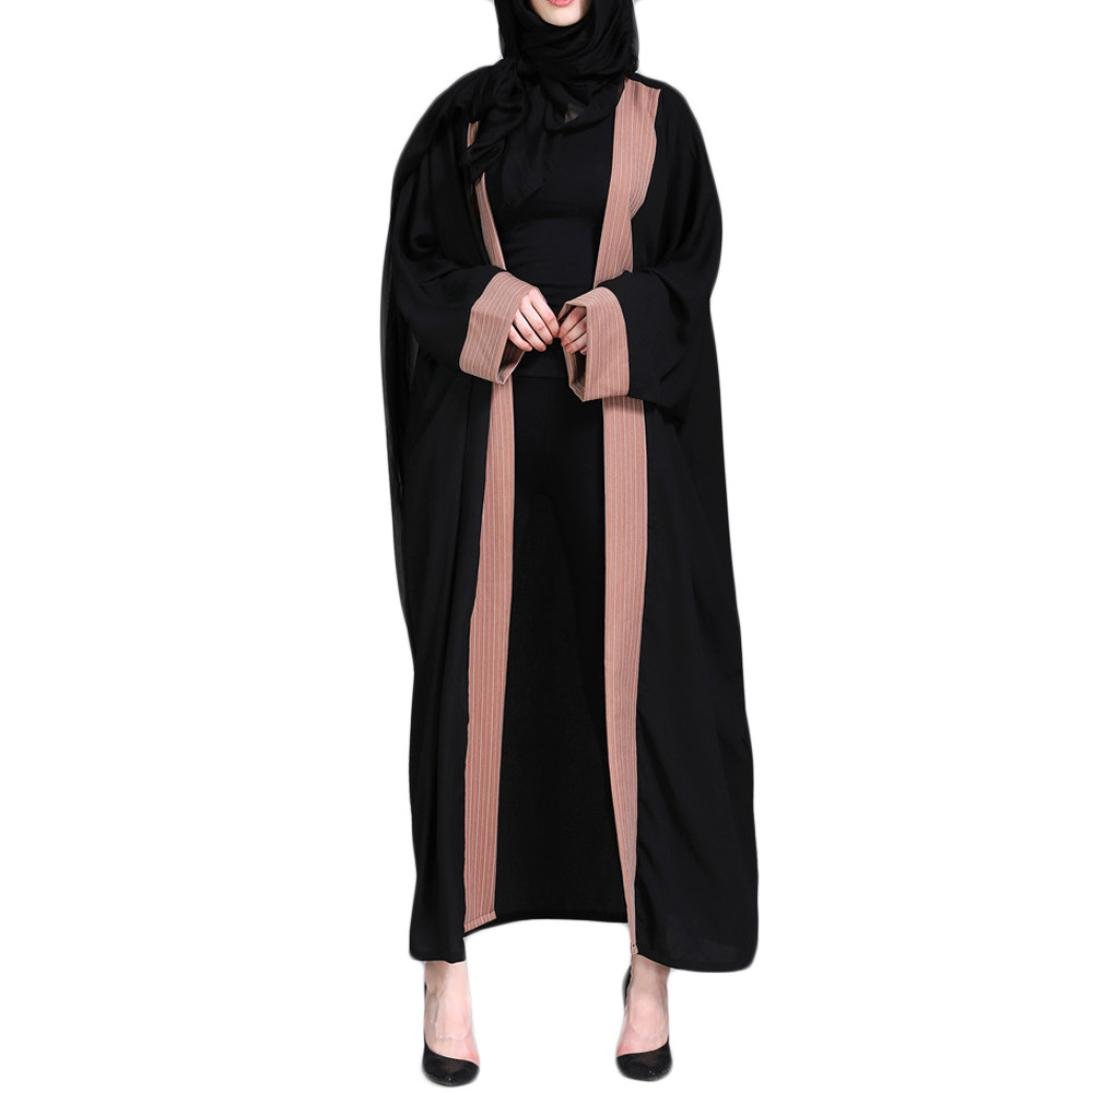 Spbamboo Muslim Women Islamic Embroidered Splice Long Coat Middle East Long Robe